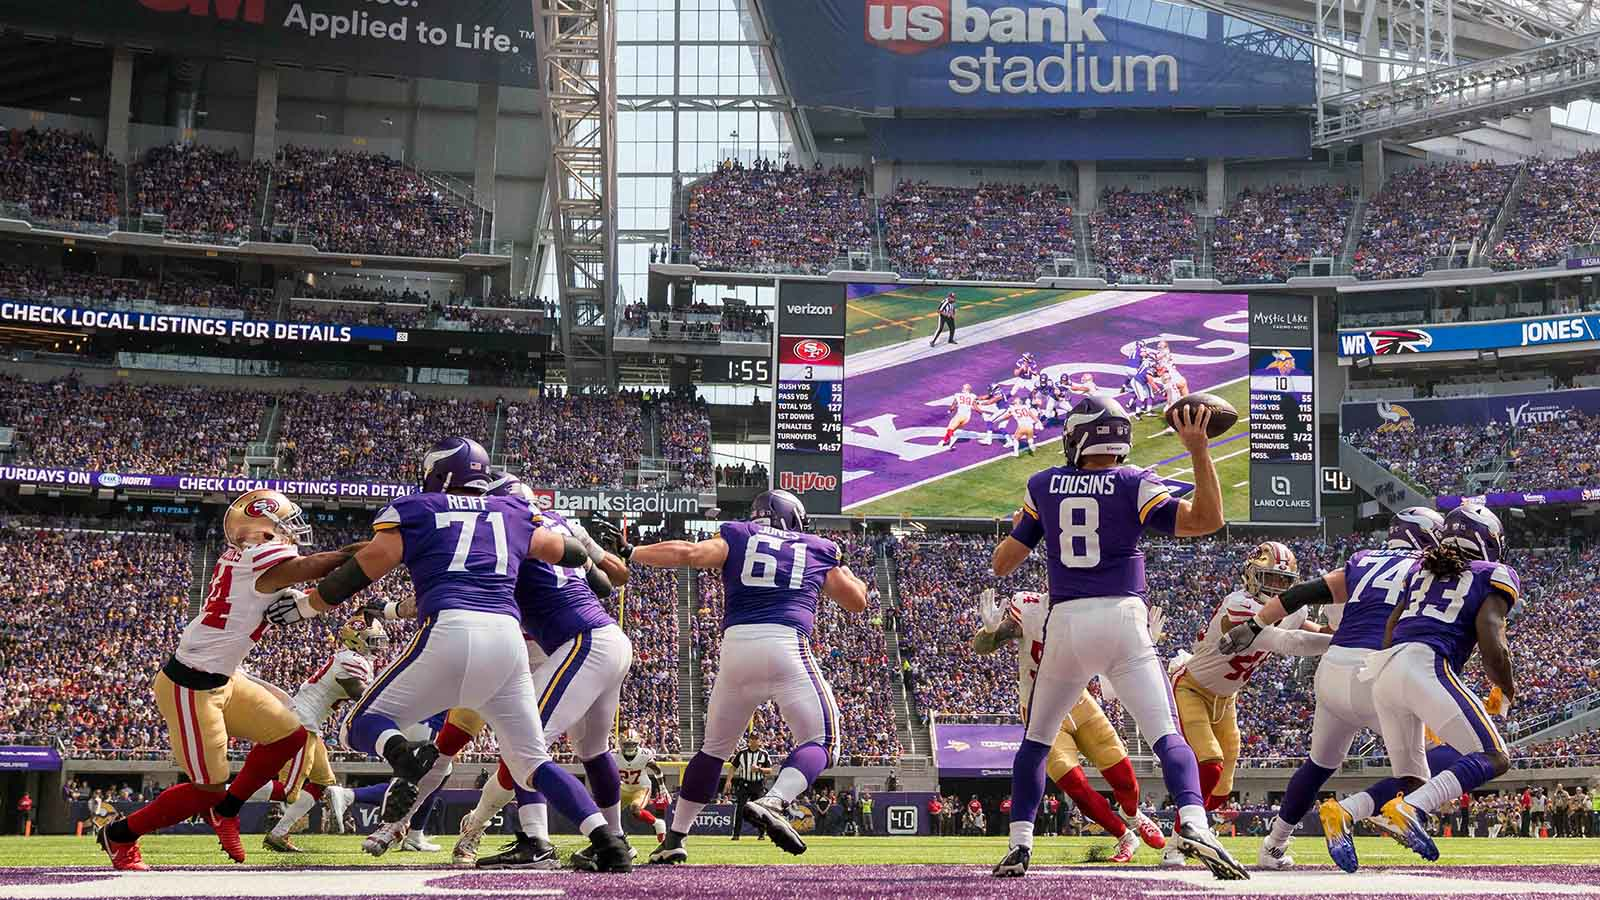 Sep 9, 2018; Minneapolis, MN, USA; Minnesota Vikings quarterback Kirk Cousins (8) passes in the second quarter against San Francisco 49ers at U.S. Bank Stadium. Mandatory Credit: Brad Rempel-USA TODAY Sports